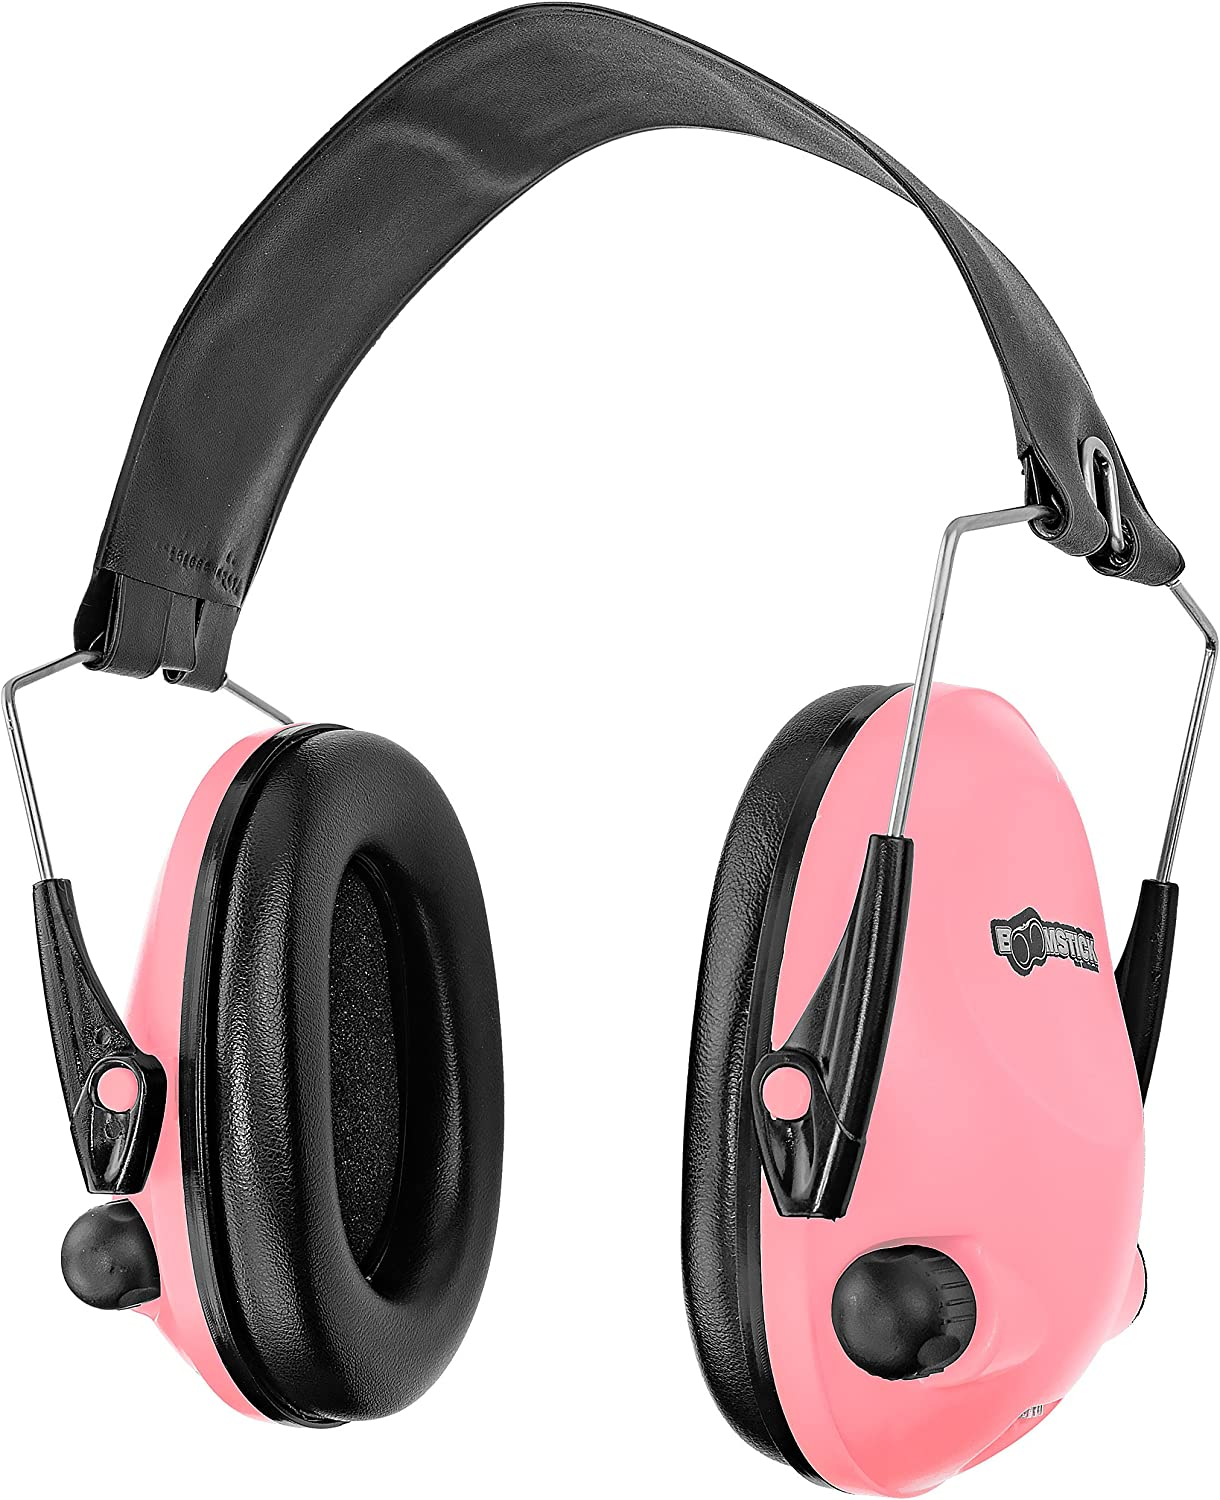 Boomstick Gun Accessories Electronic Low Profile Noise Cancelling Over The Head Folding Earmuff Noise Safety Hearing Protection Pink